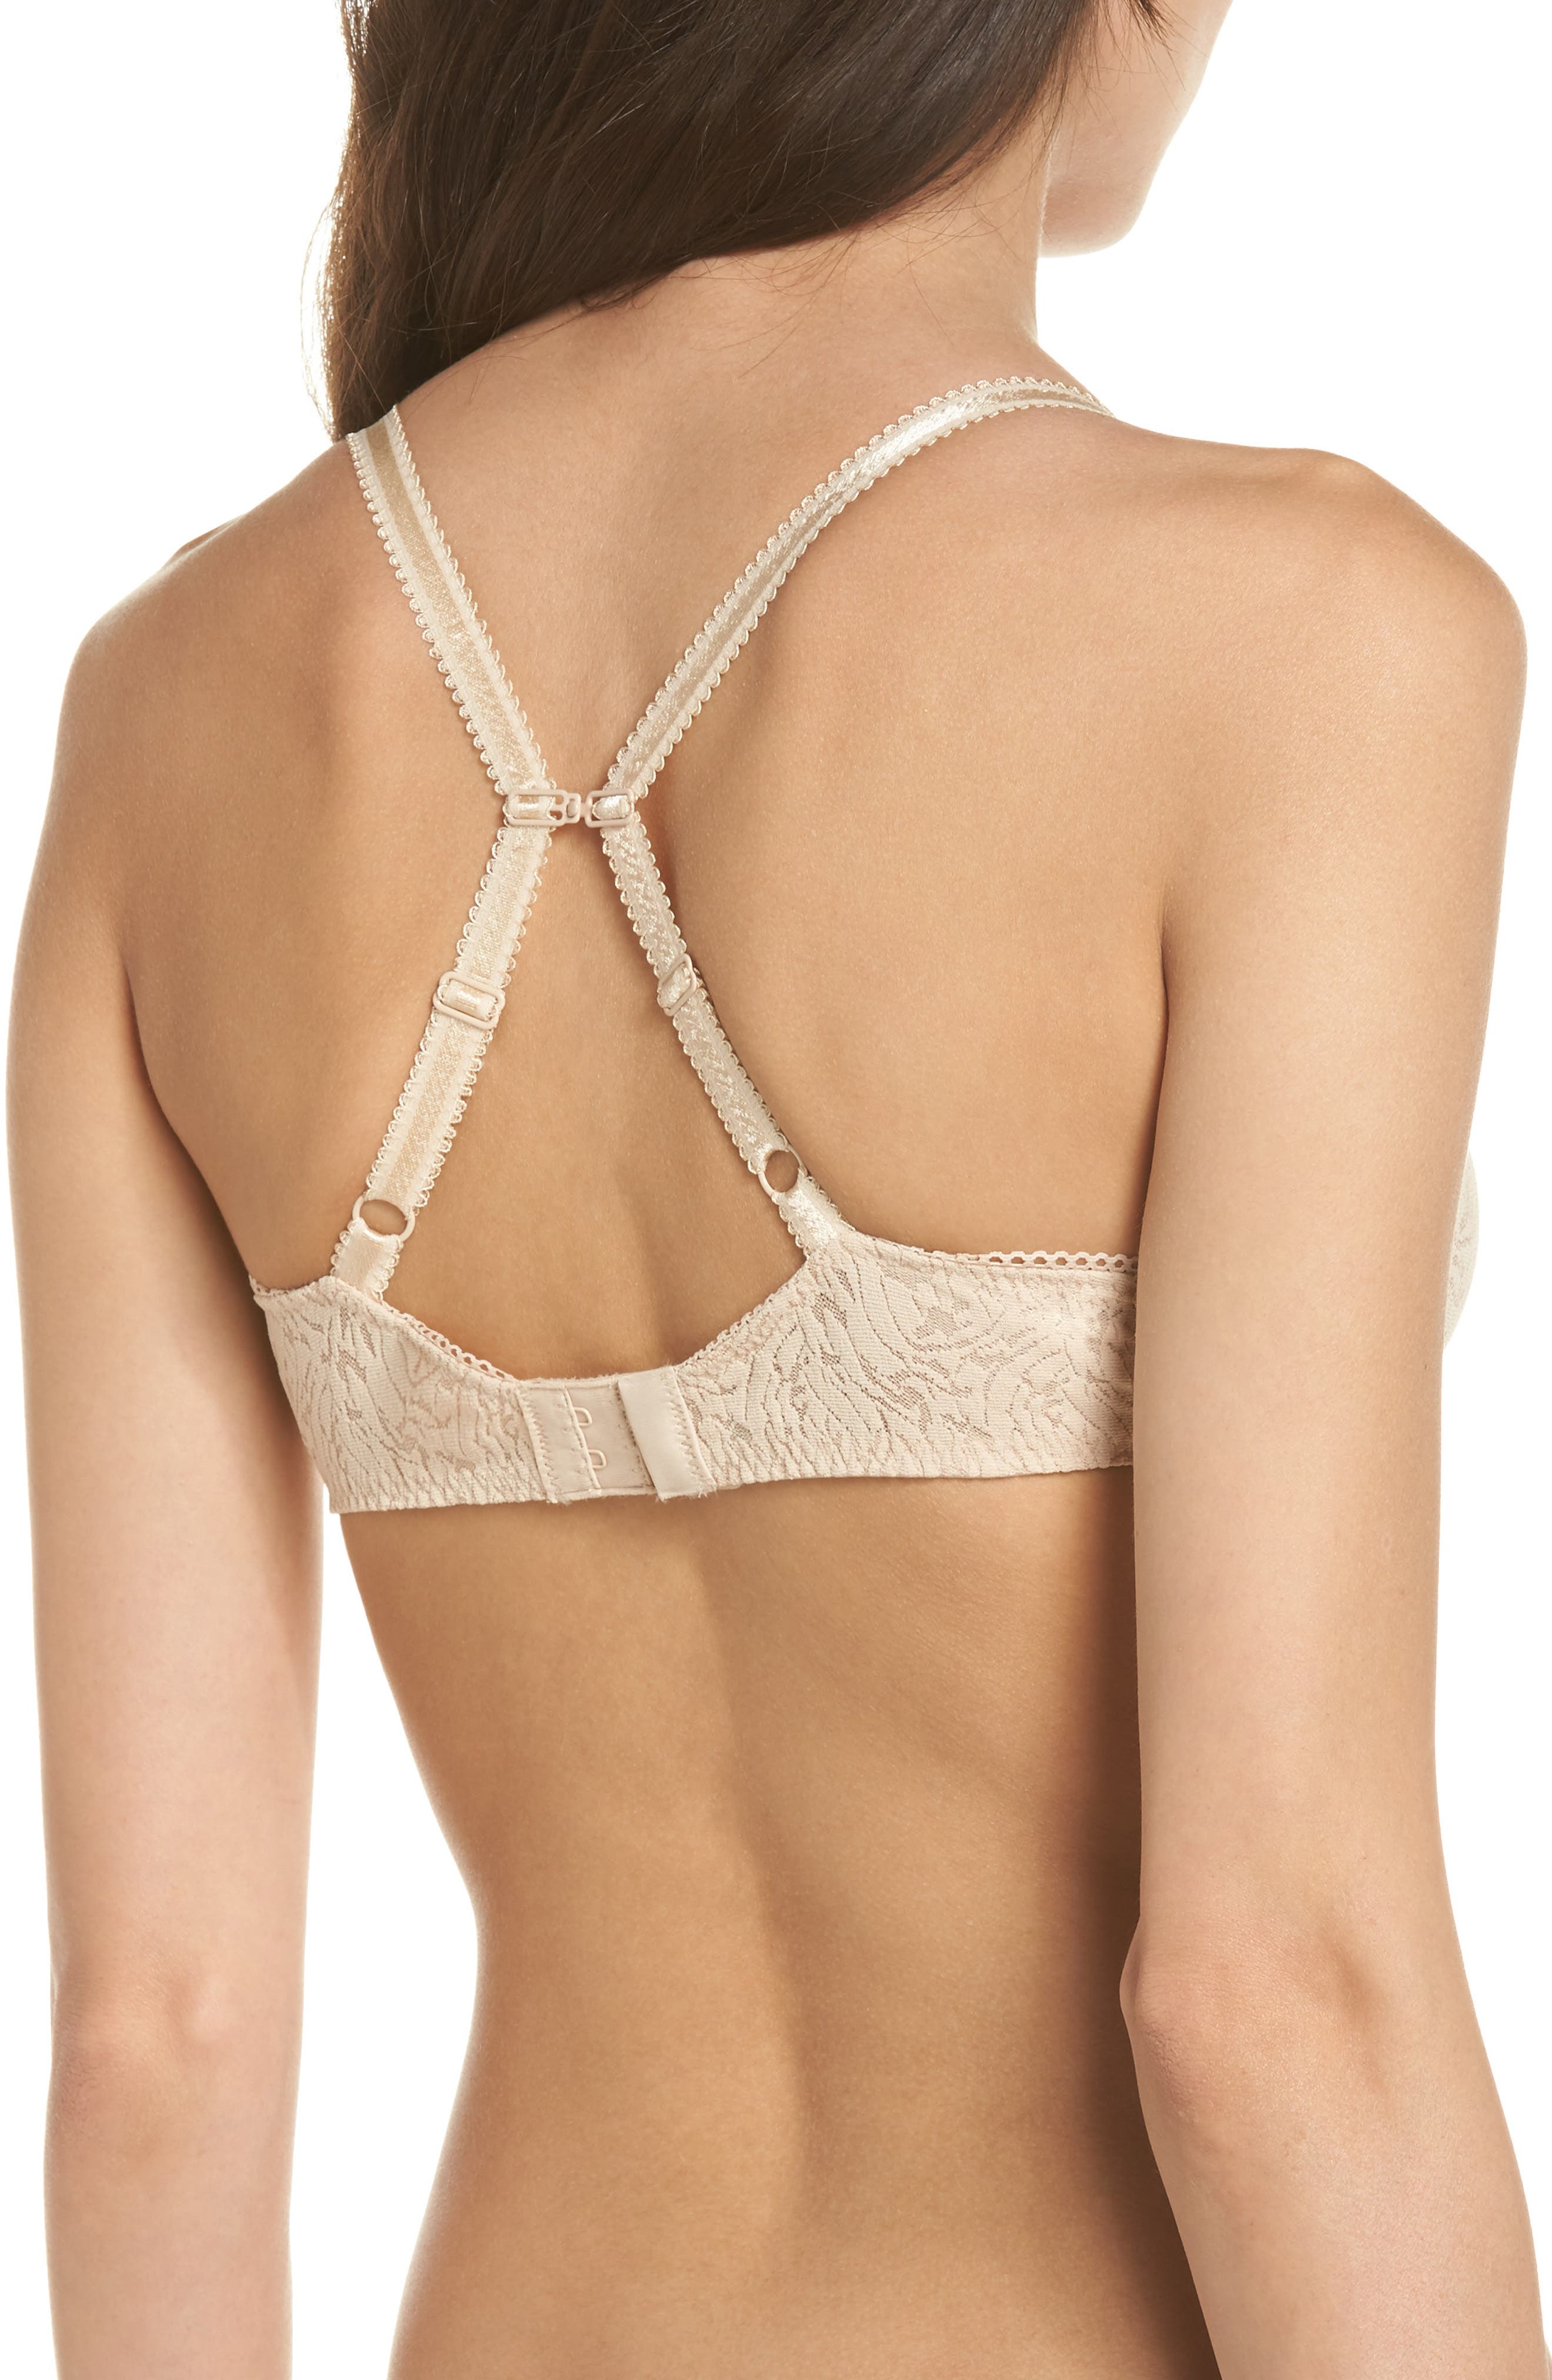 Modern Method Underwire Bra,                             Alternate thumbnail 8, color,